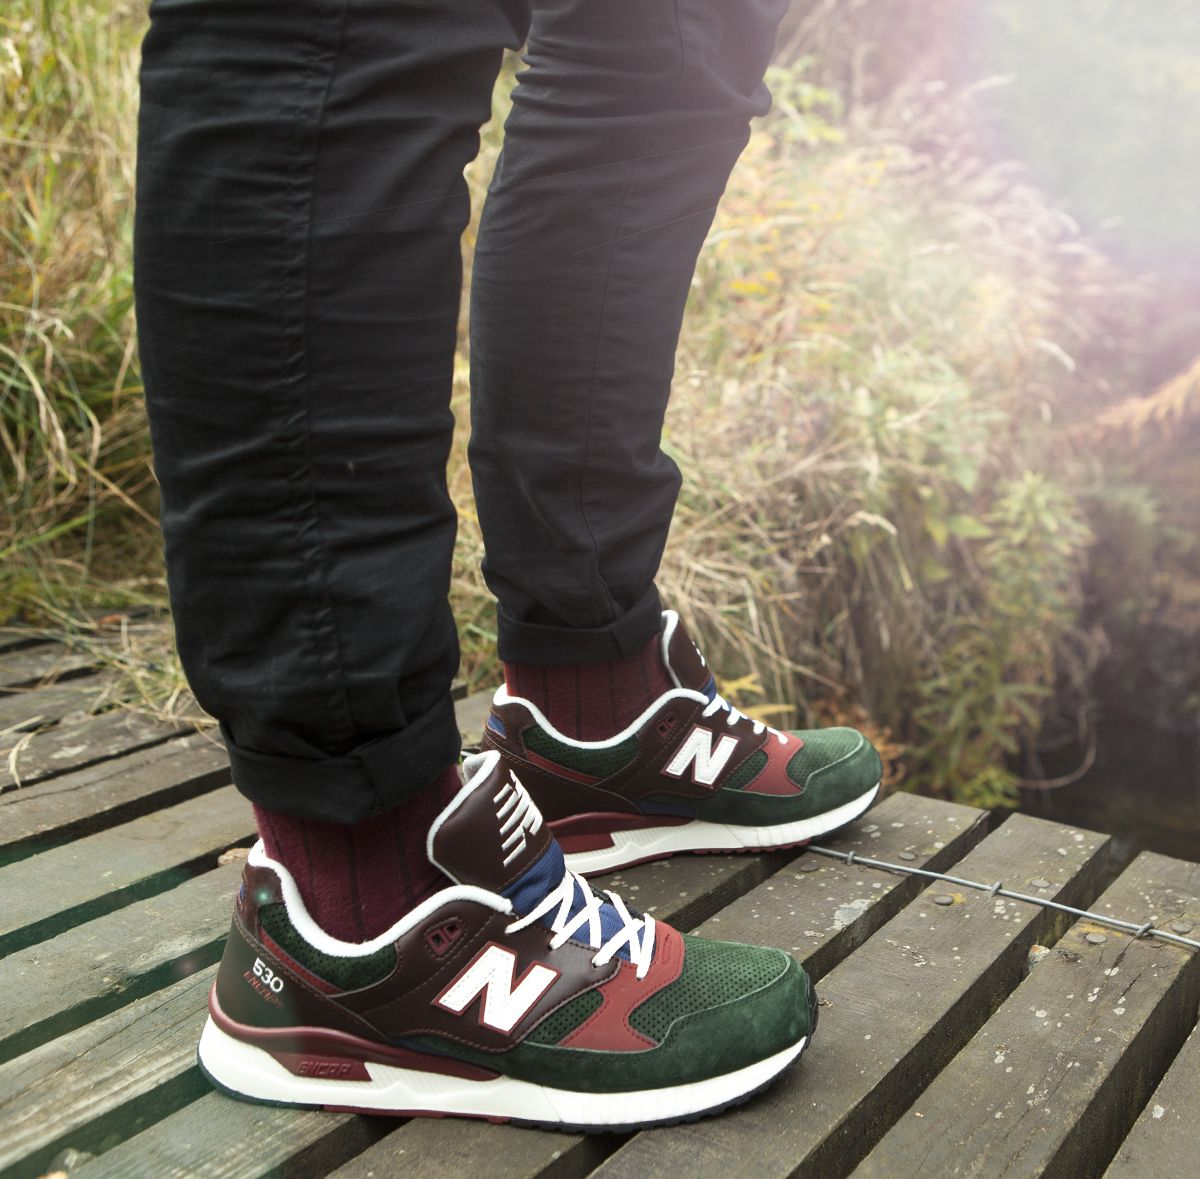 The New Balance 530 wants to be on your feet.